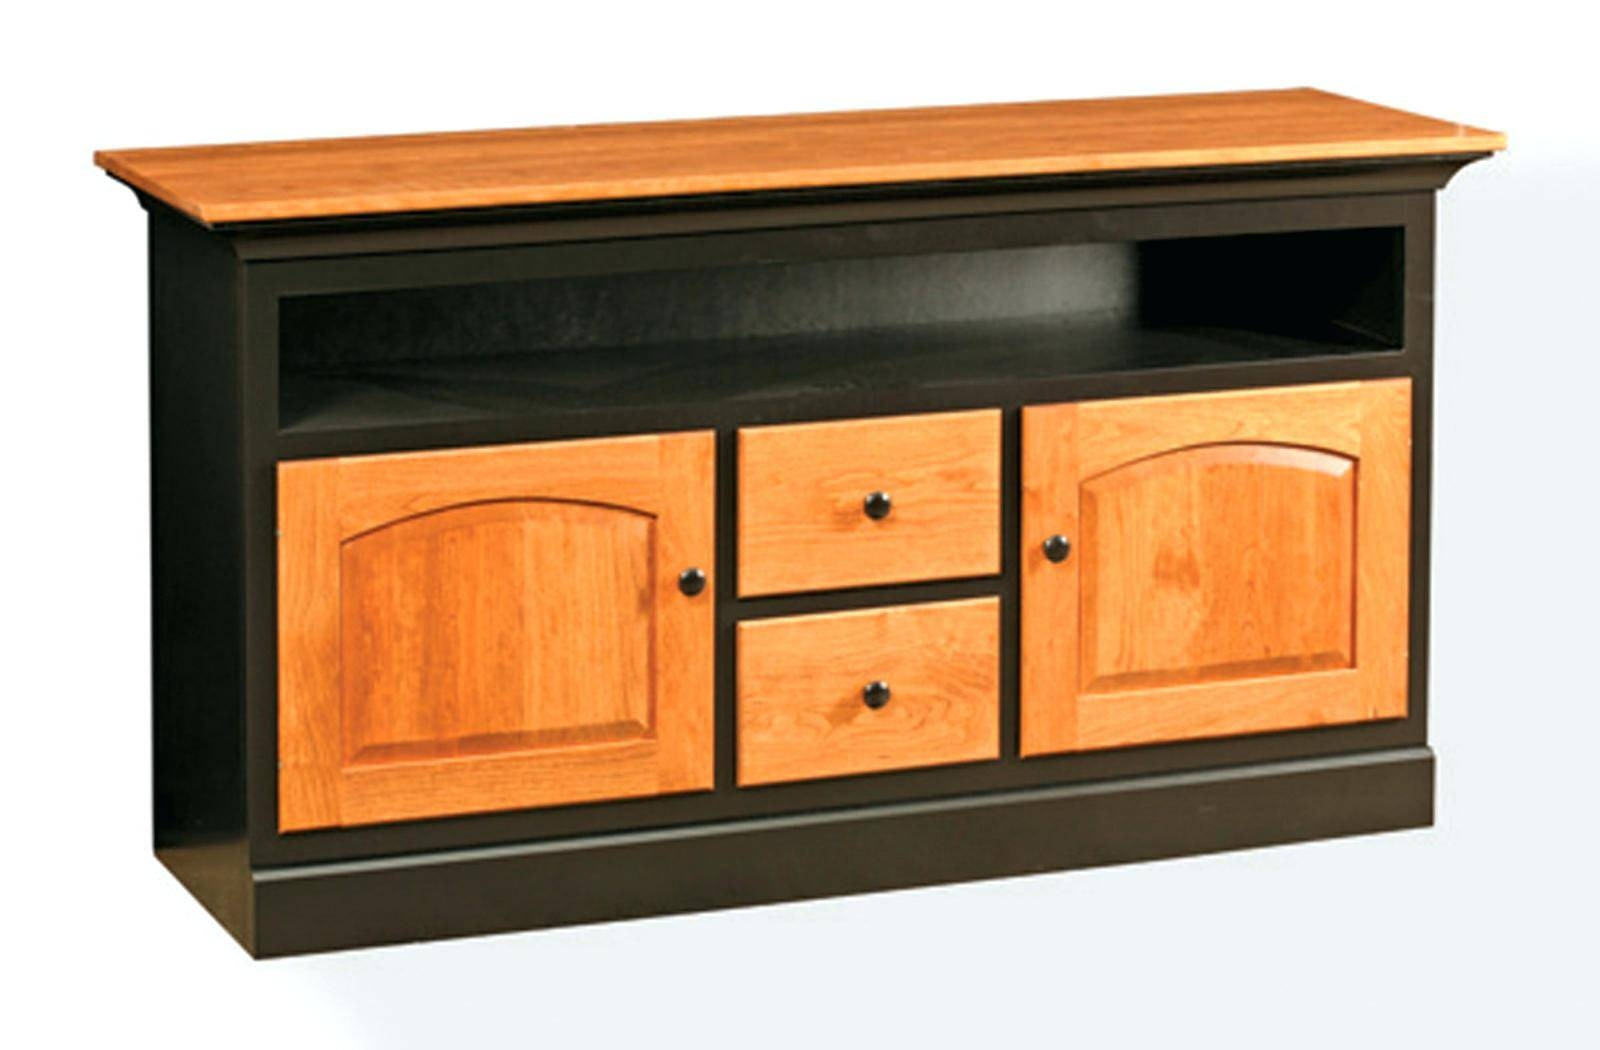 Tv Stand: Gorgeous Maple Wood Tv Stand For Home Space. Maple Oak regarding Maple Wood Tv Stands (Image 10 of 15)